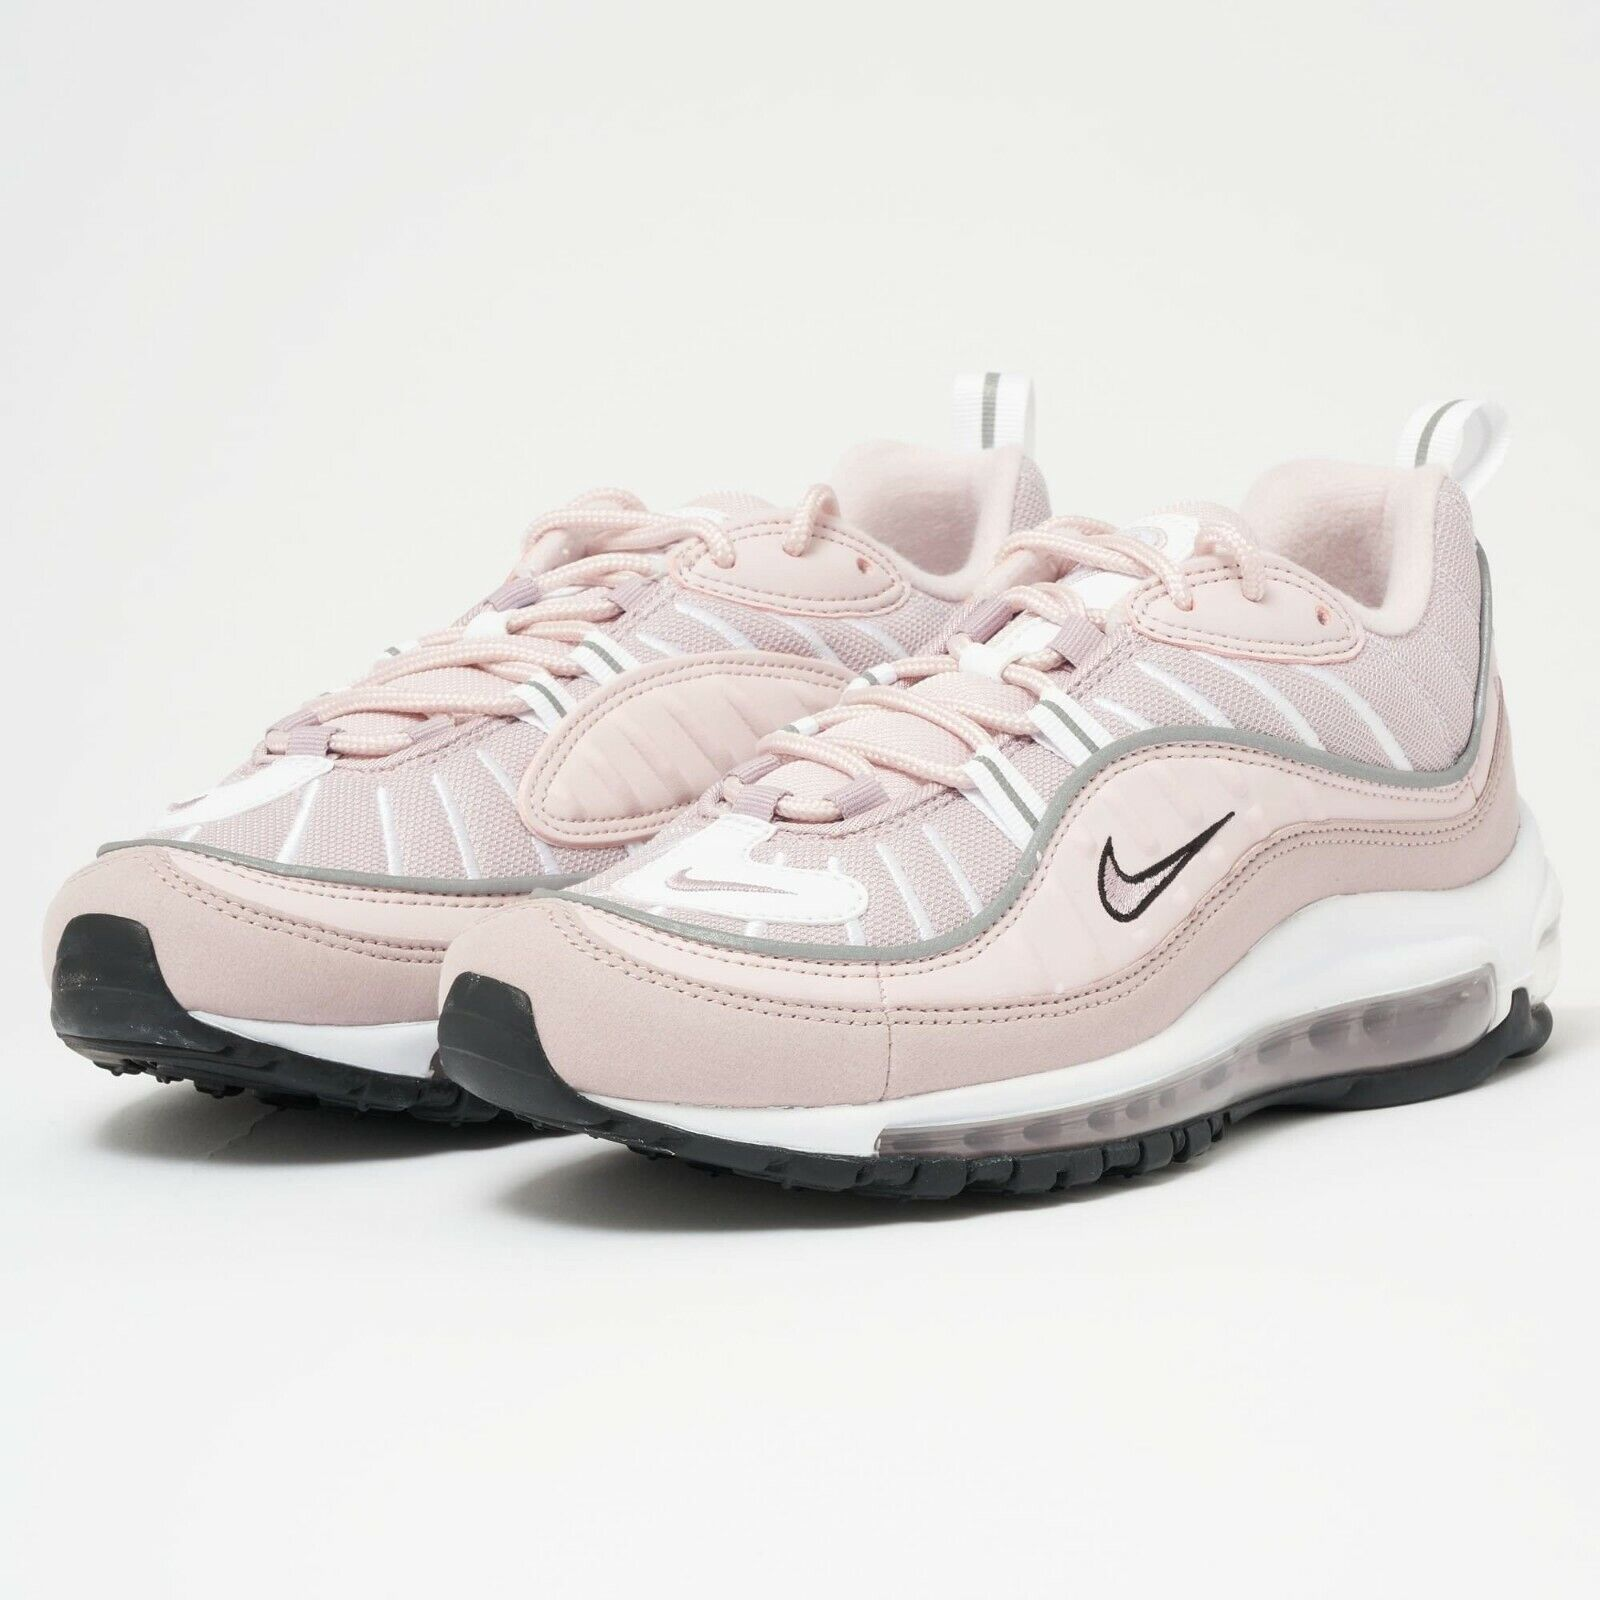 2018 WMNS Nike Air Max 98 SZ 10 Barely pink Elemental pink AH6799-600